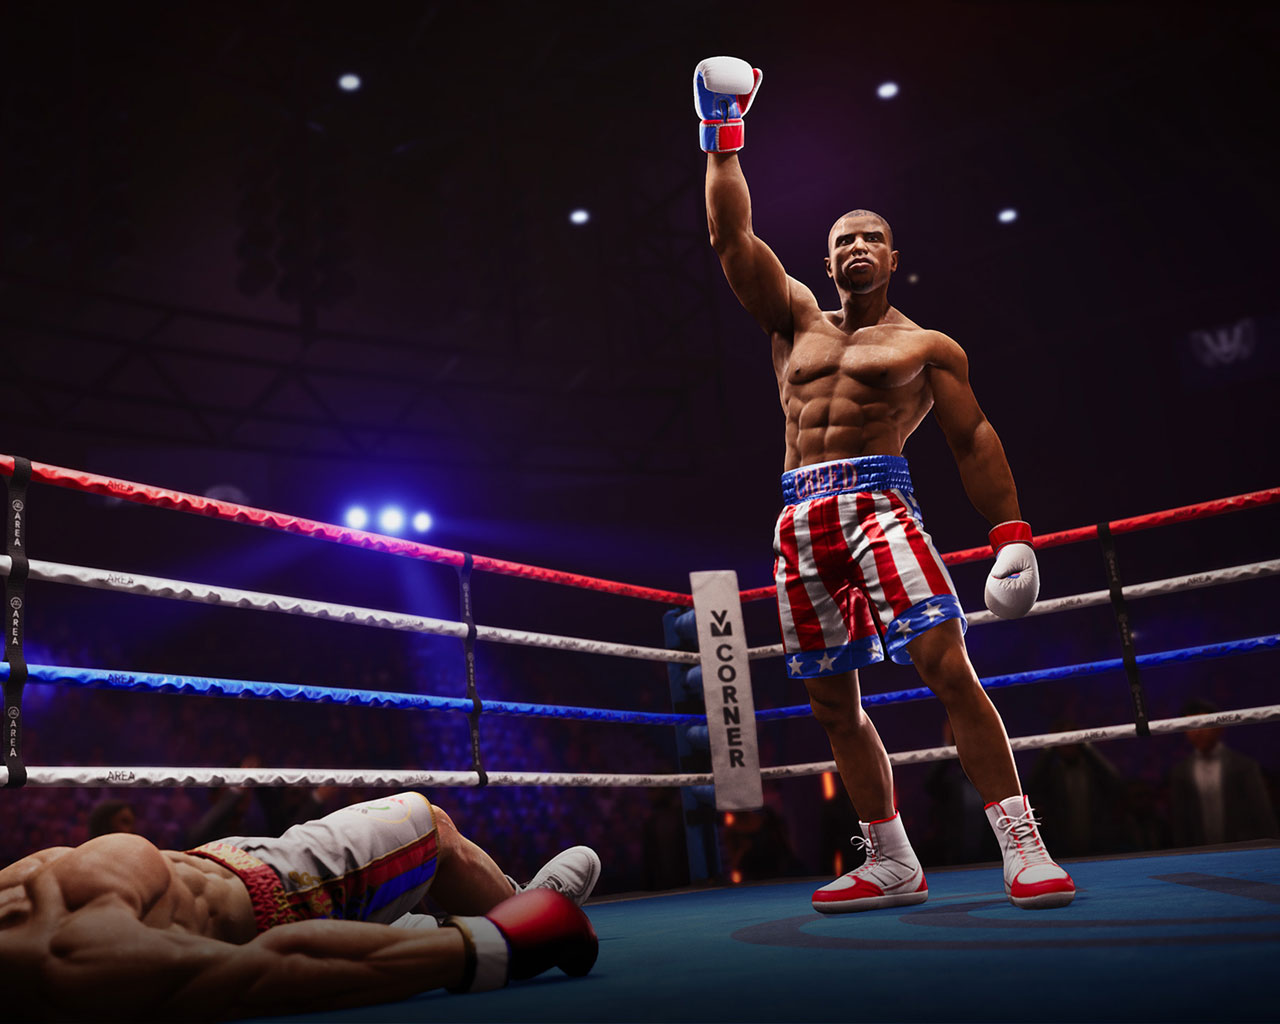 Free Big Rumble Boxing: Creed Champions Wallpaper in 1280x1024